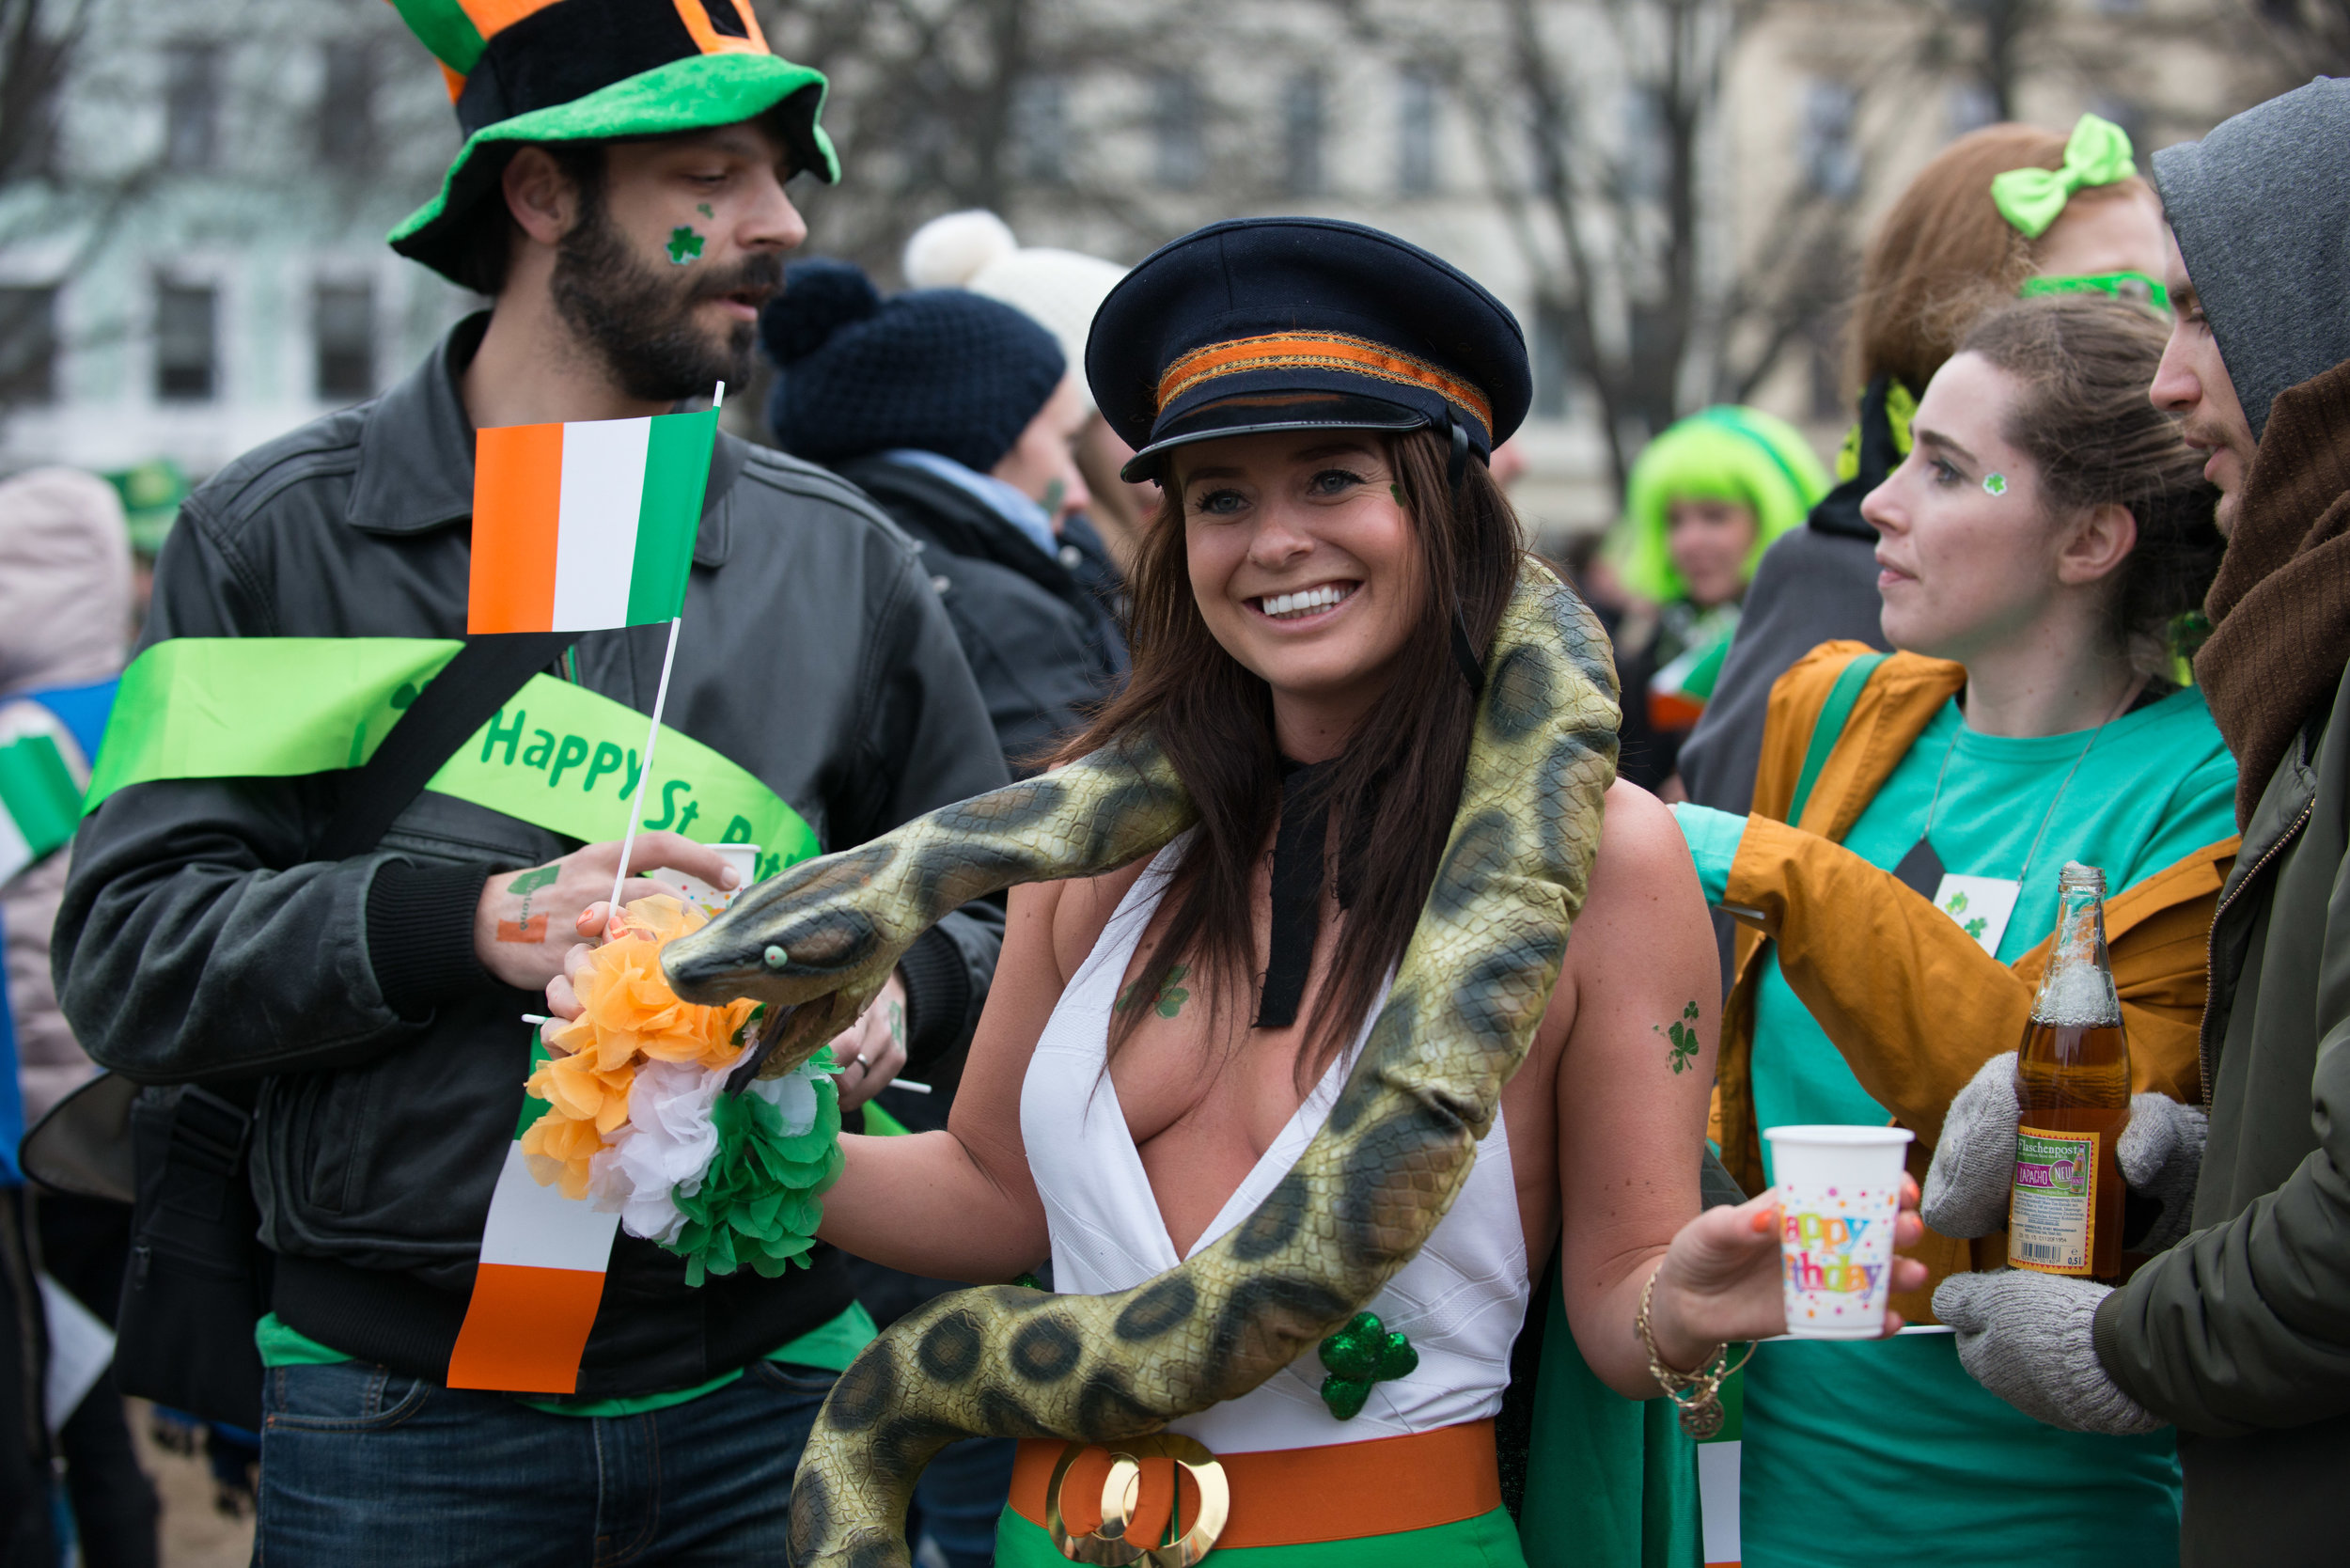 st-patricks-day-berlin-all-46.jpg